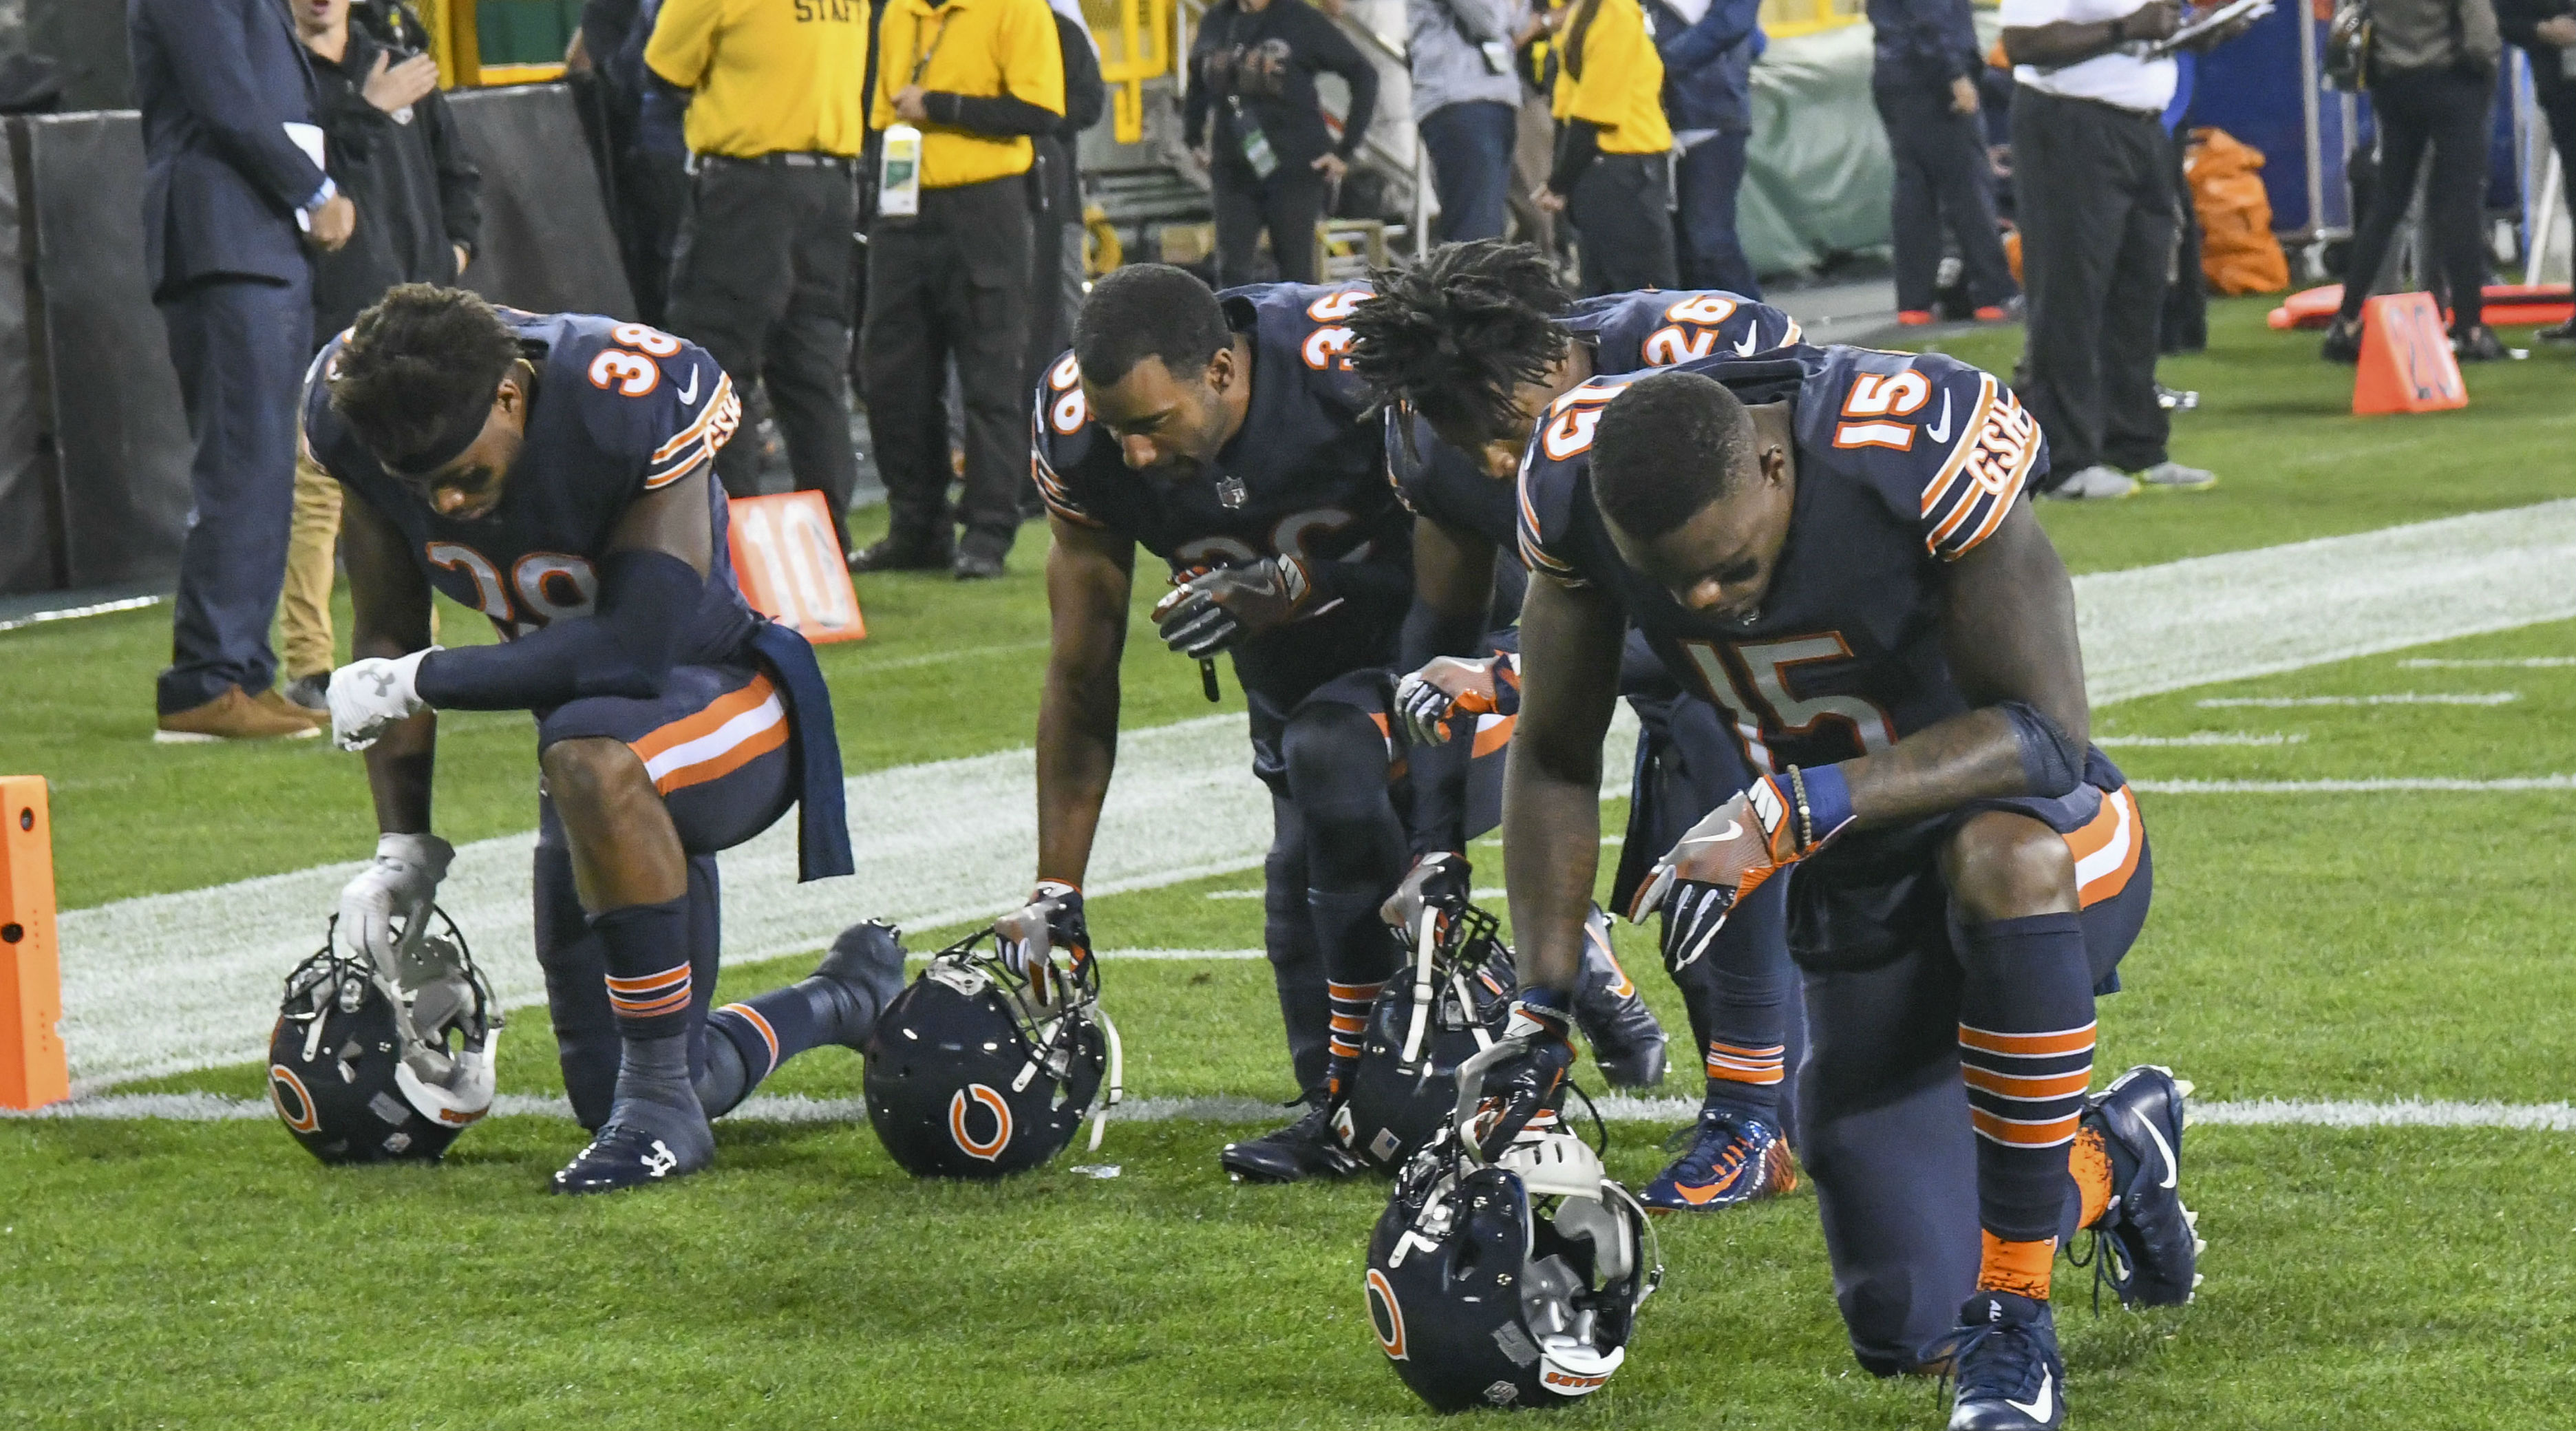 Athletes kneel to protest racial injustice.